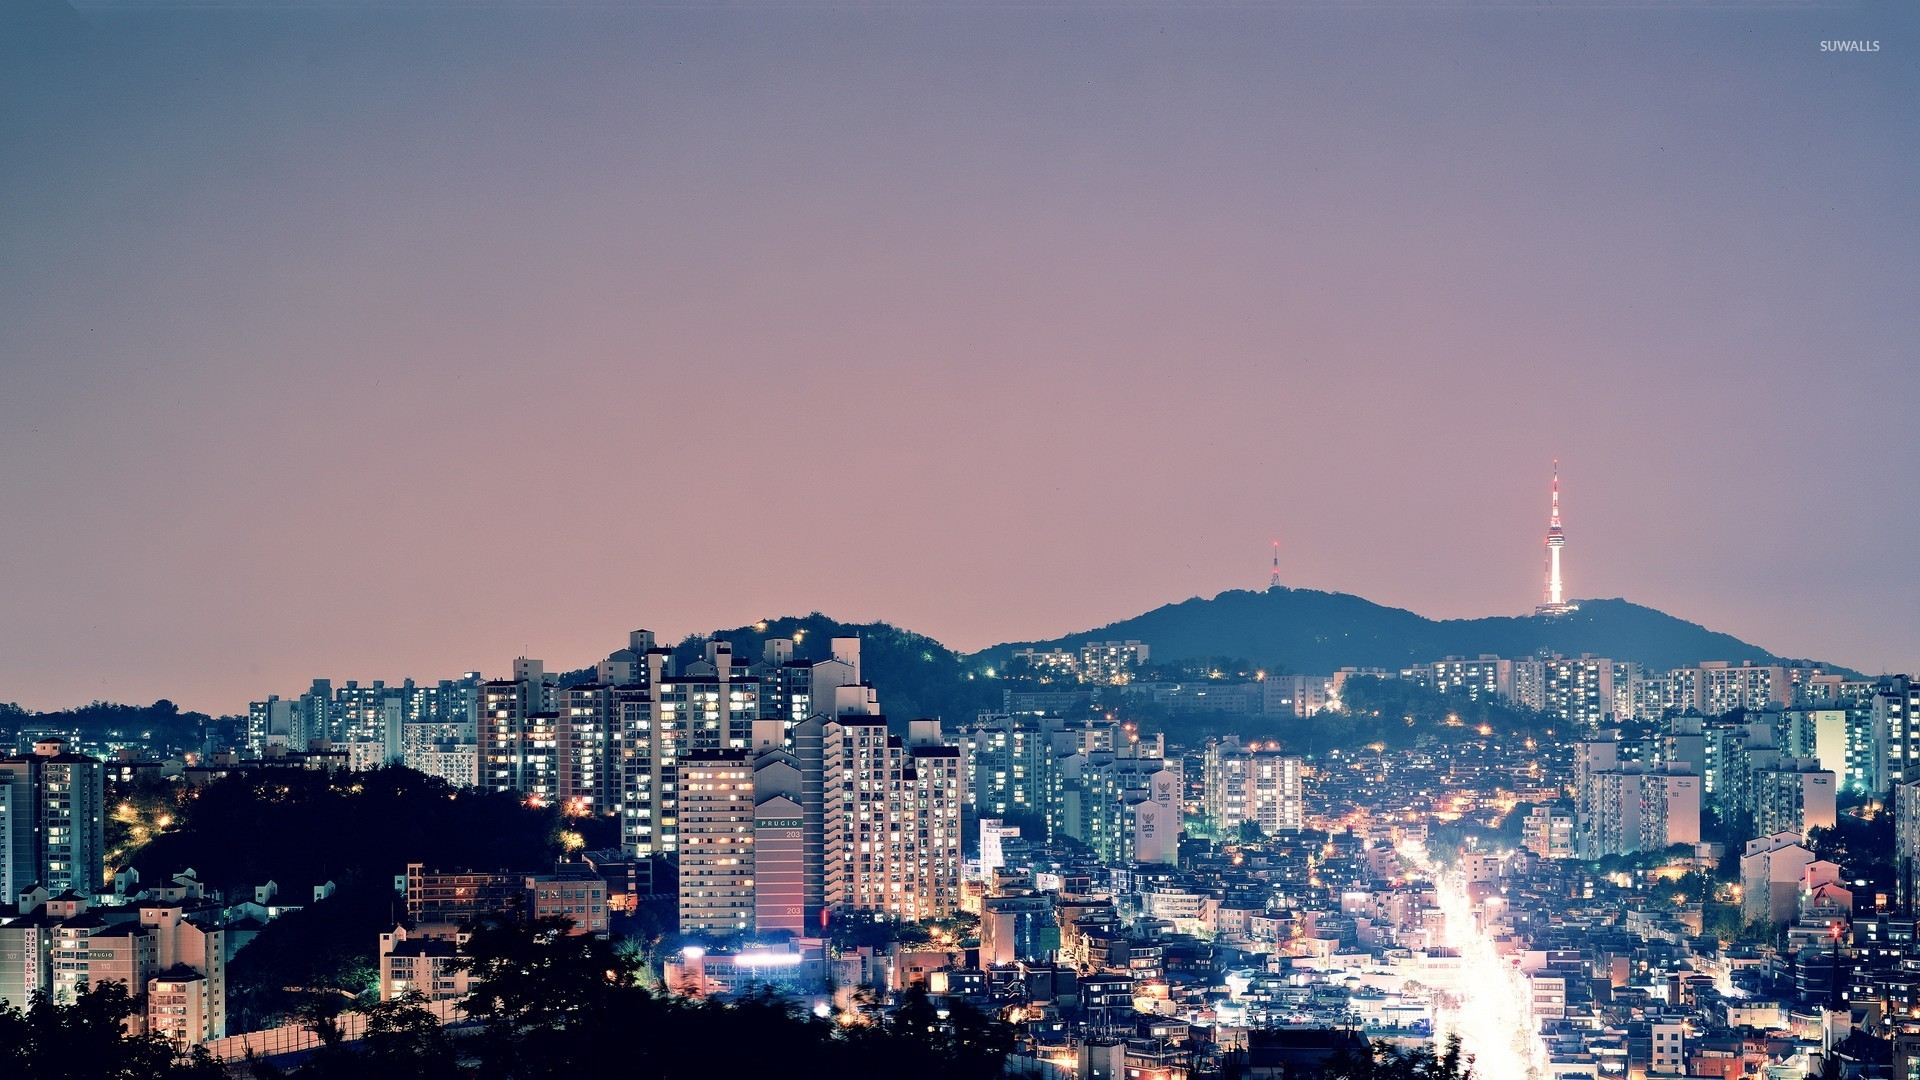 South Korea Wallpapers, Pictures, Images - photo#49